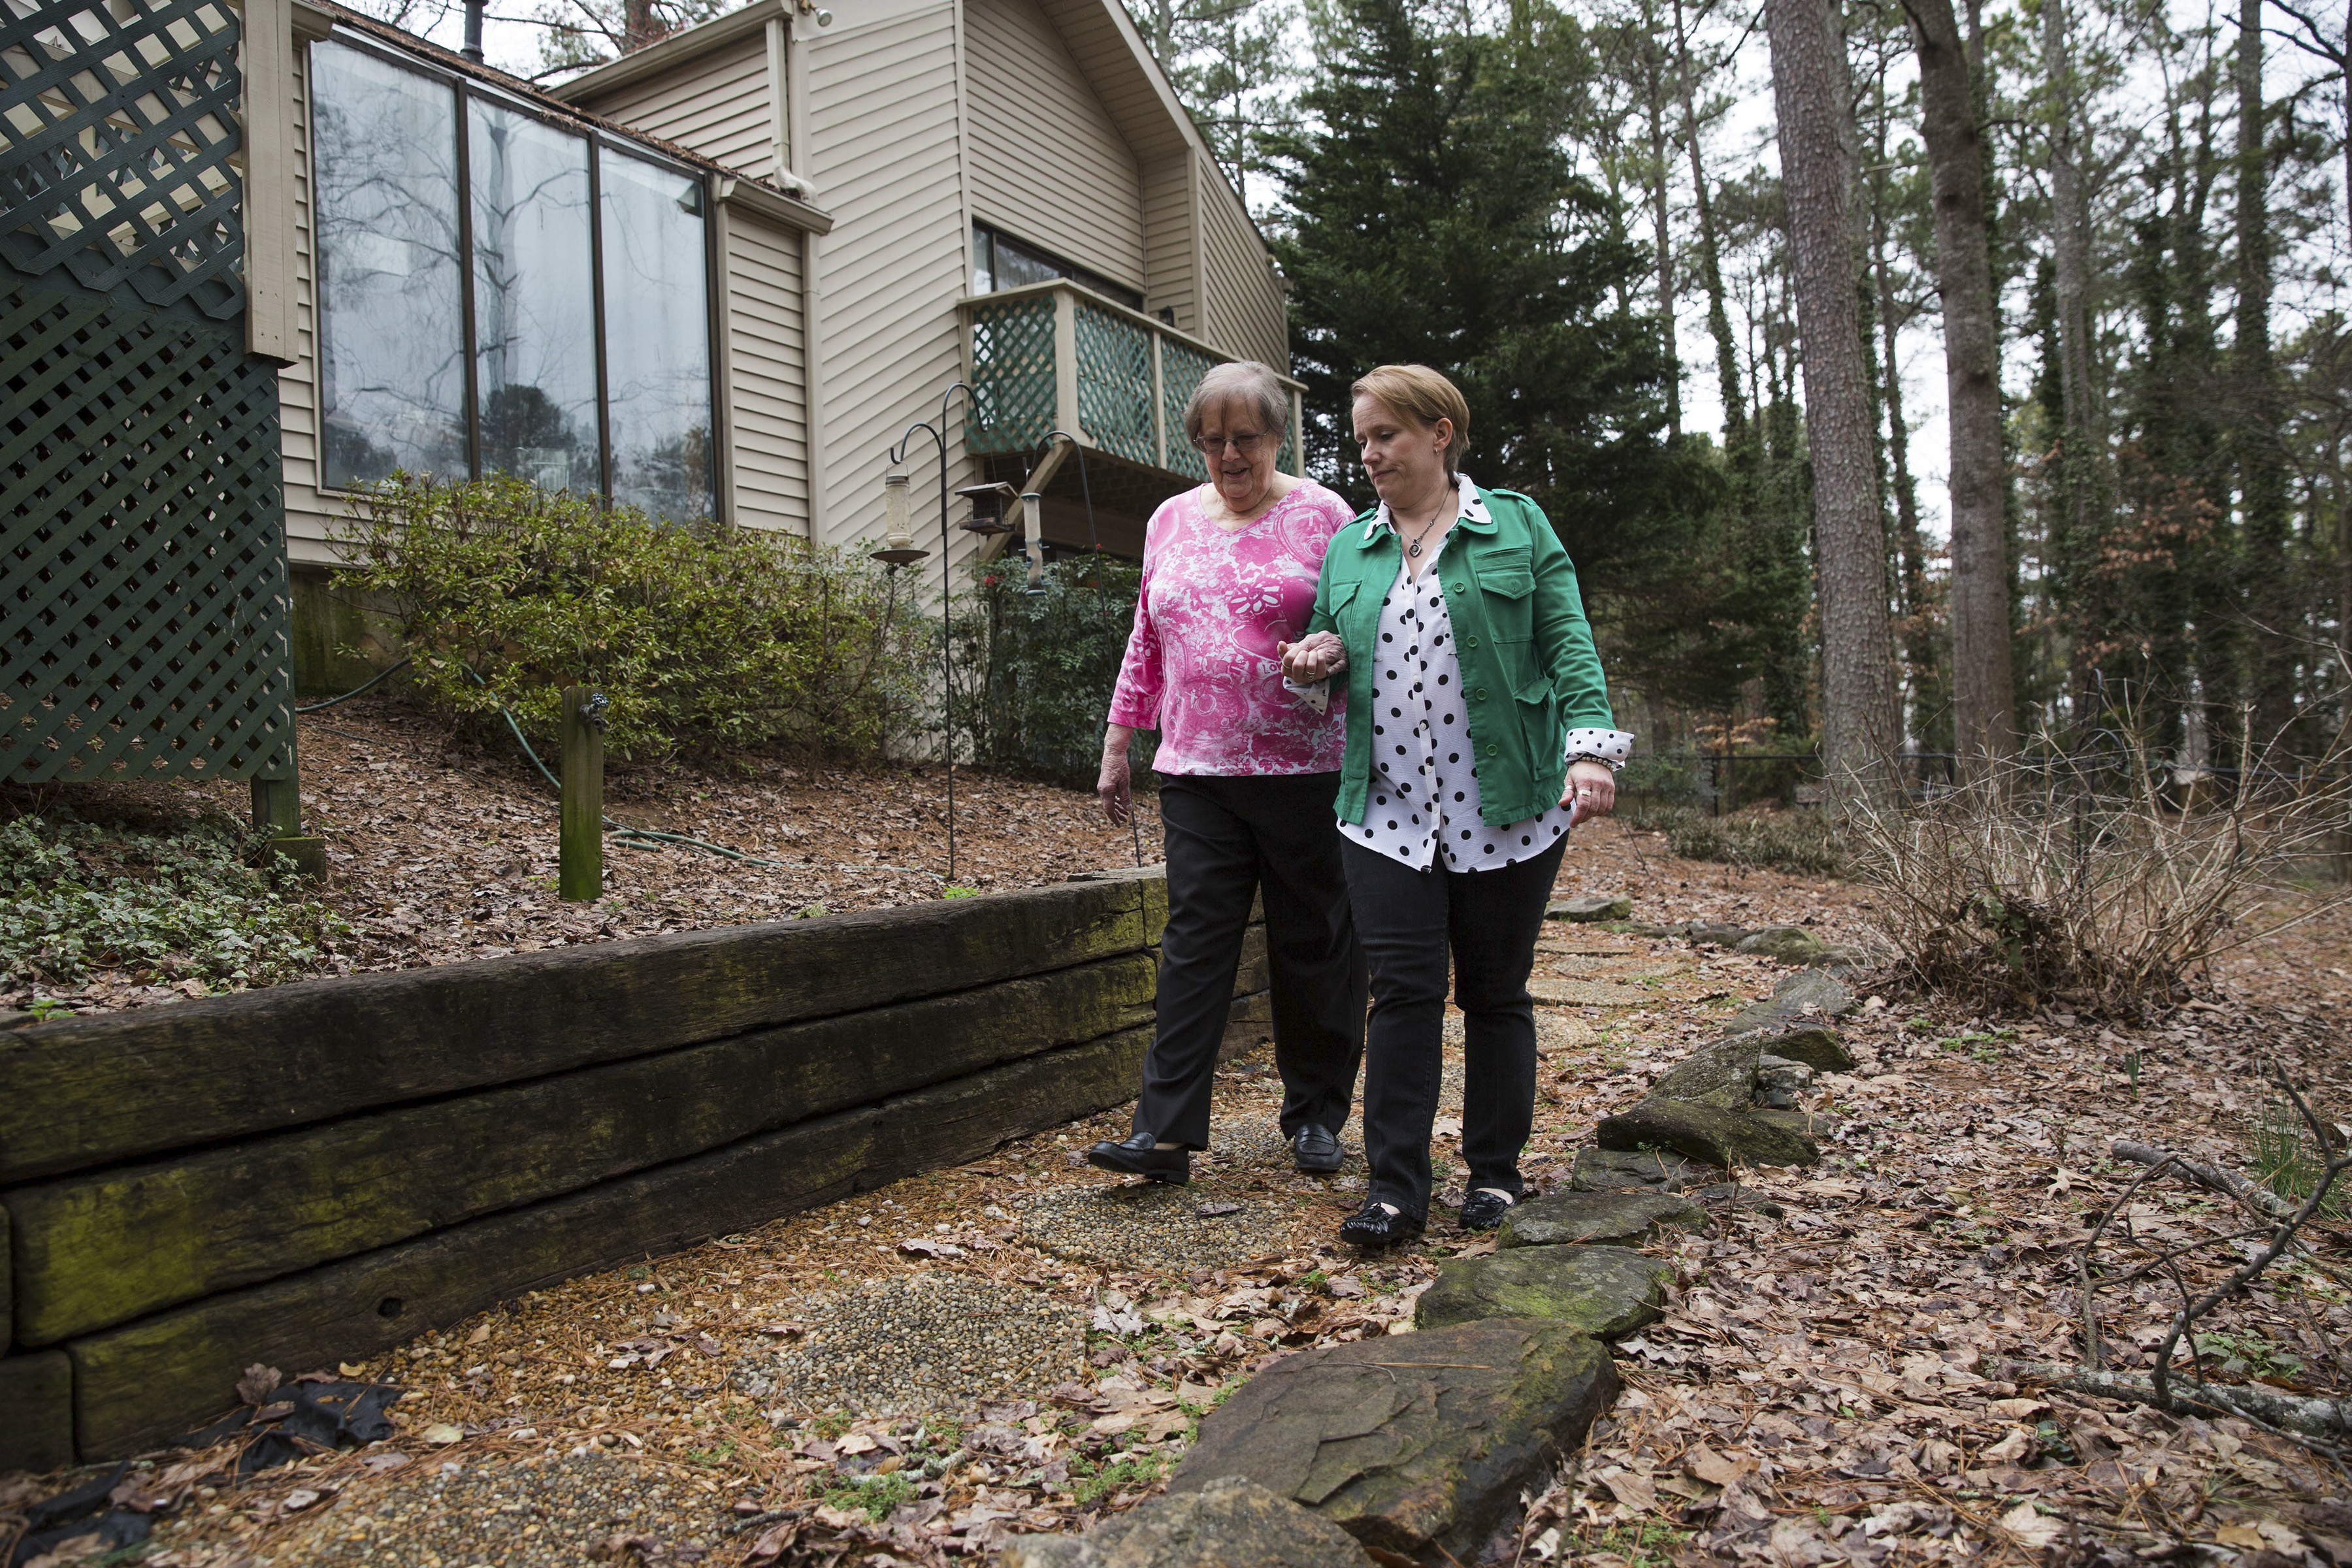 SCI SHARED LIVING 2 Susan Yarbrough, 49, and her 83-year-old mother Betsy Yarbrough at the home they share in Johns Creek, Ga.